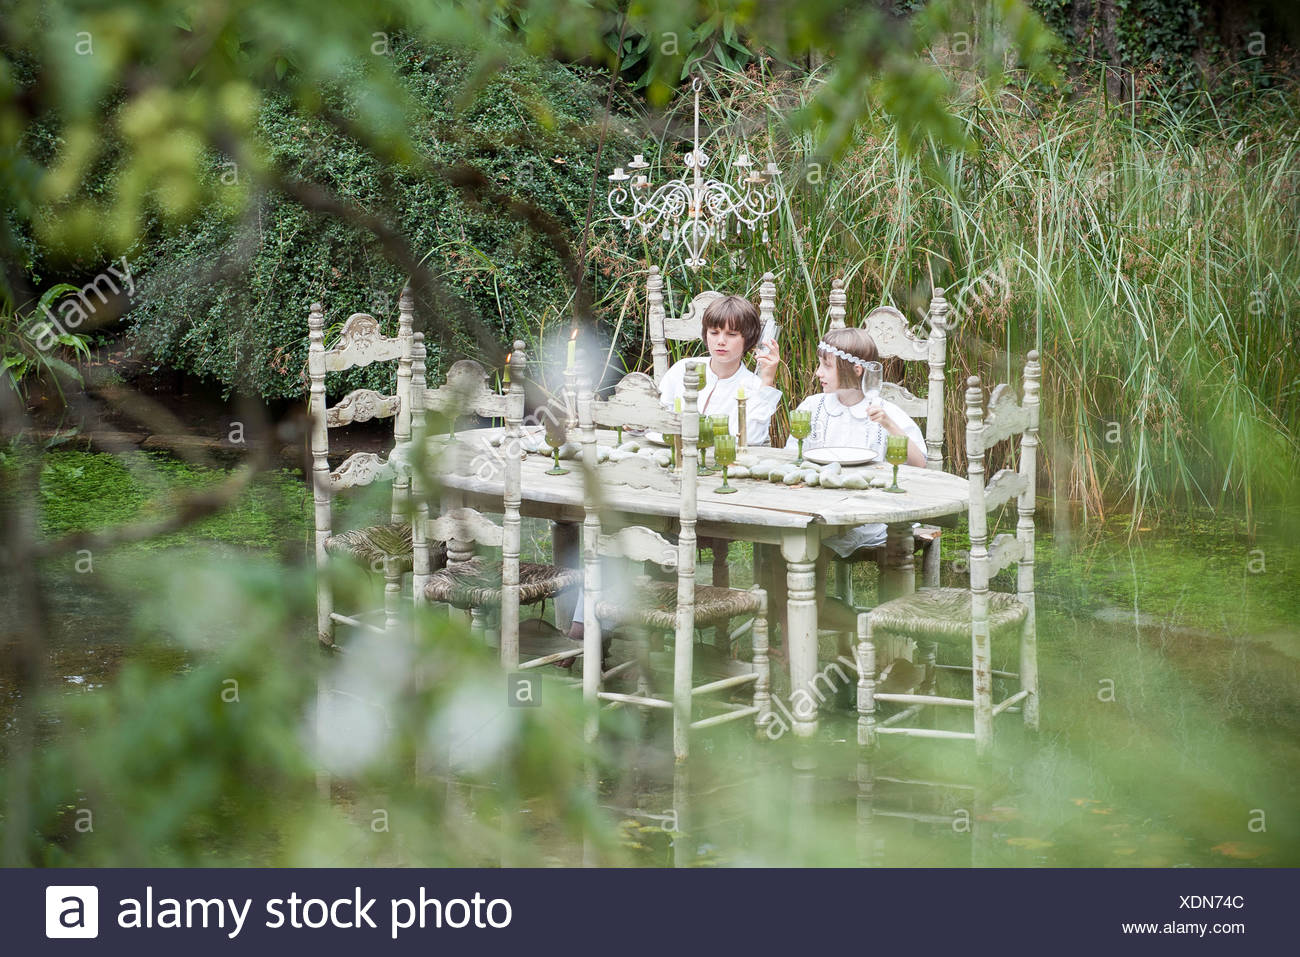 Children seated at dining table floating on lake - Stock Image